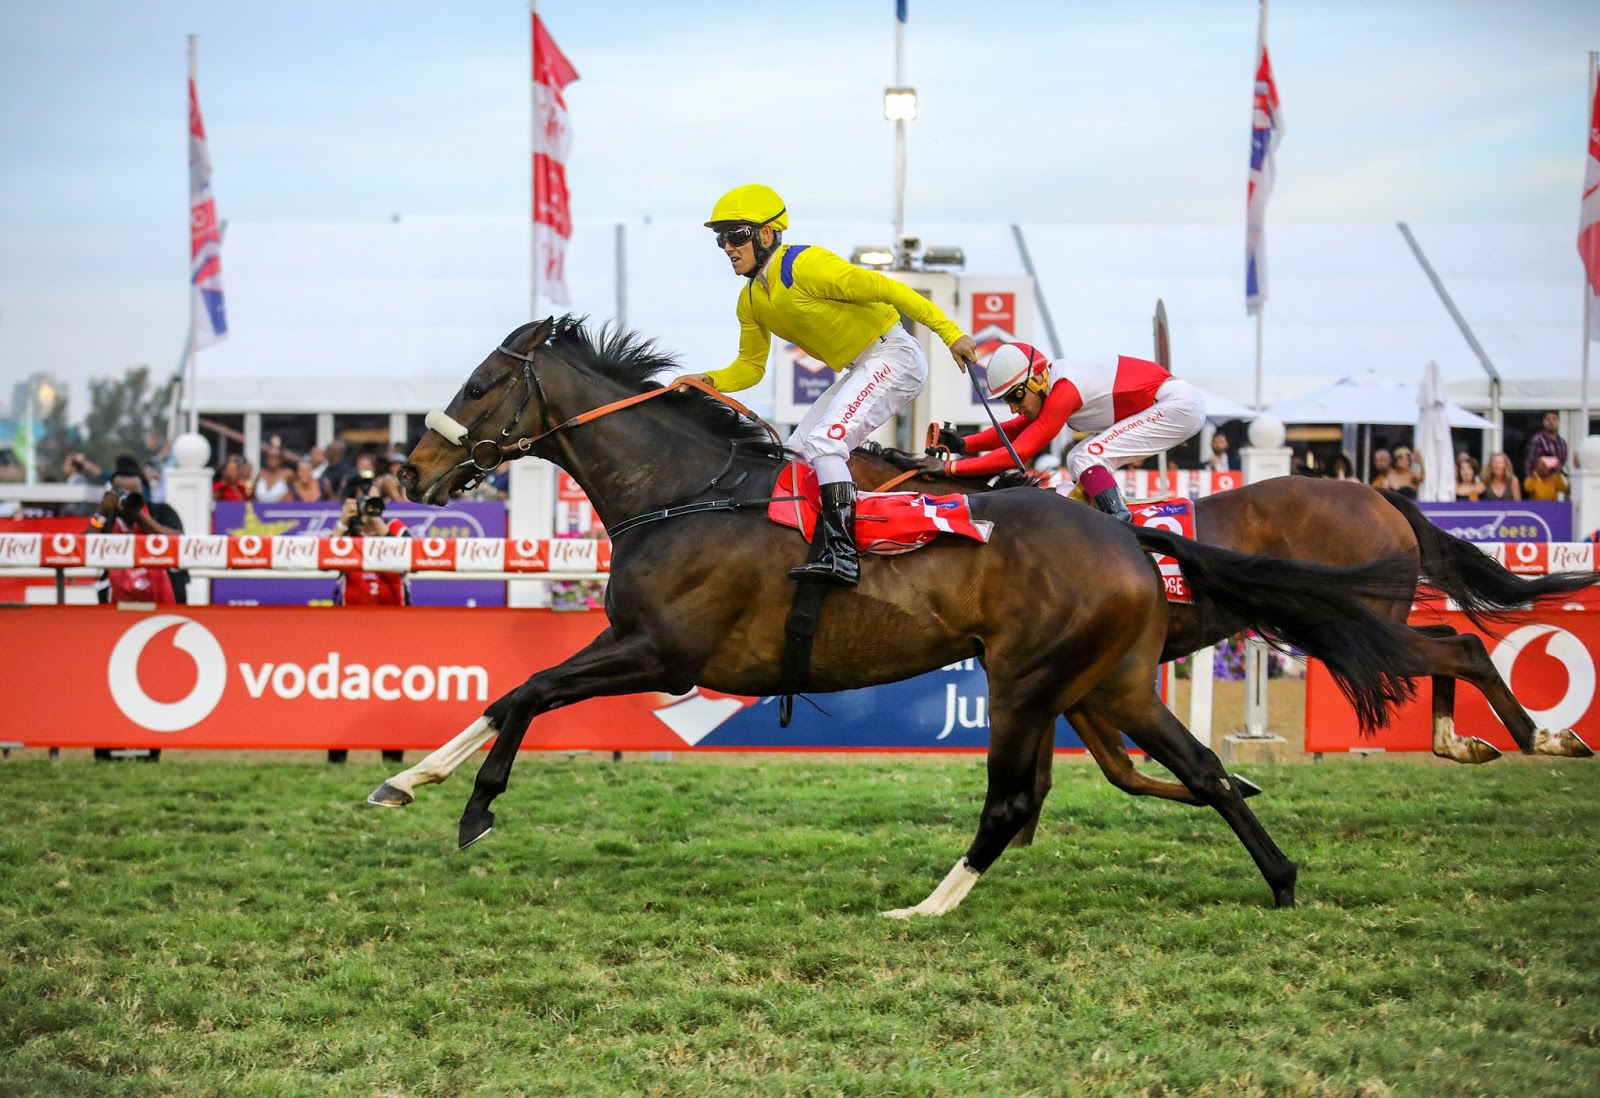 Do It Again winning the 2019 Vodacom Durban July - Photo by Candiese Marnewick / Gold Circle